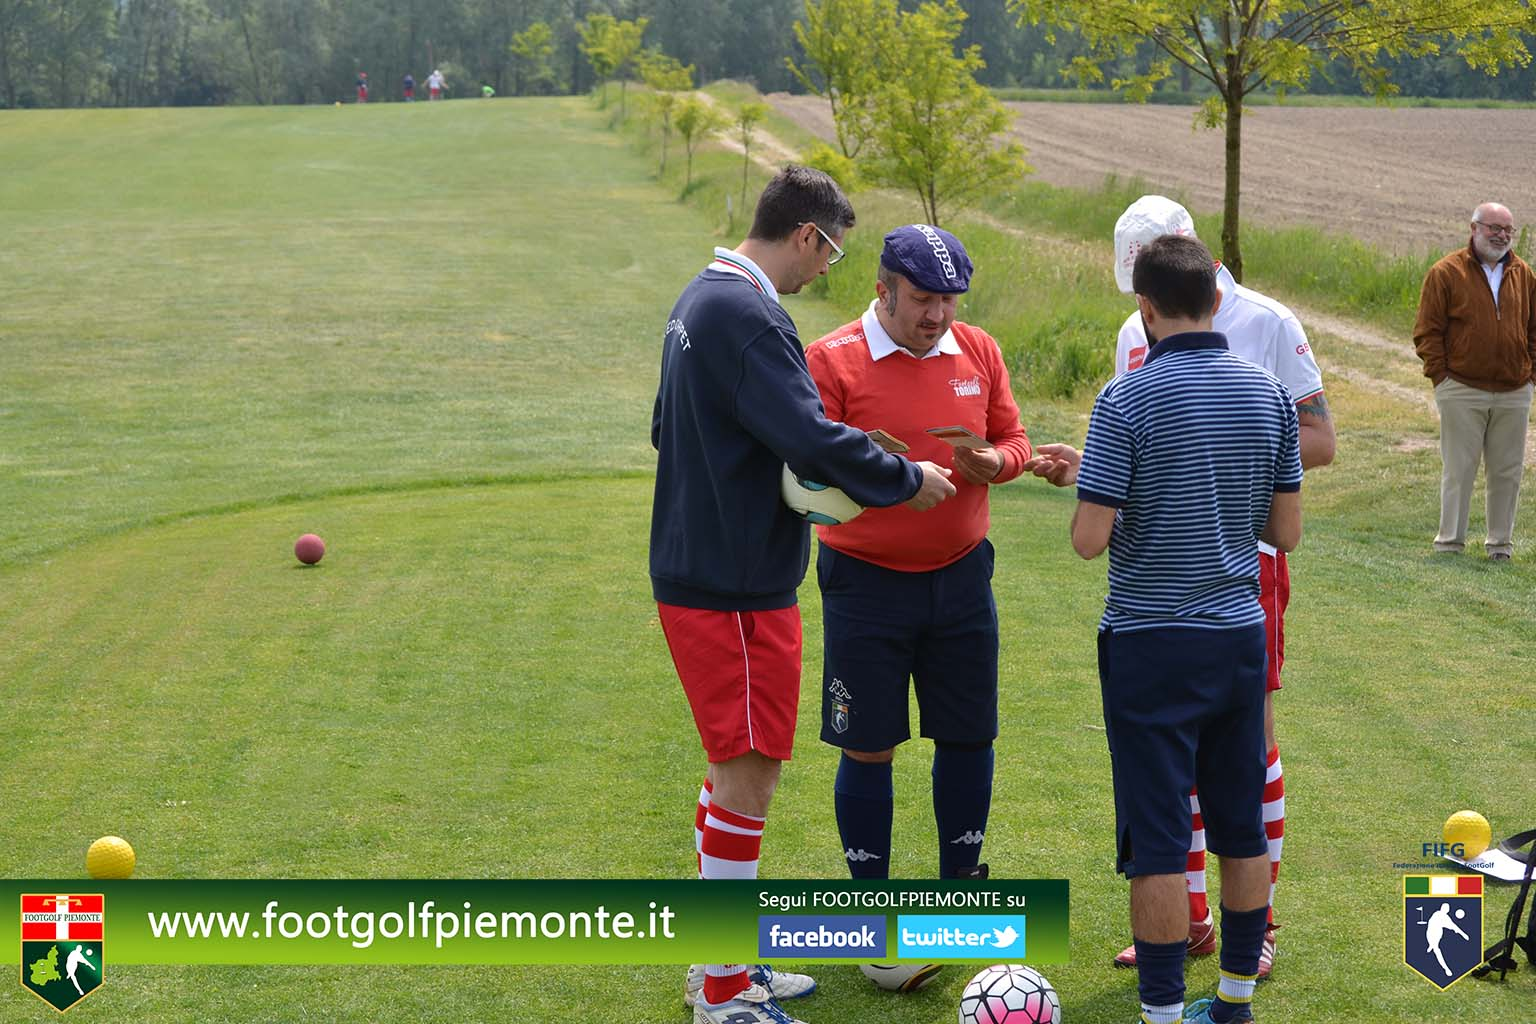 FOTO 9 Regions' Cup Footgolf Piemonte 2016 Golf Città di Asti (At) 30apr16-23